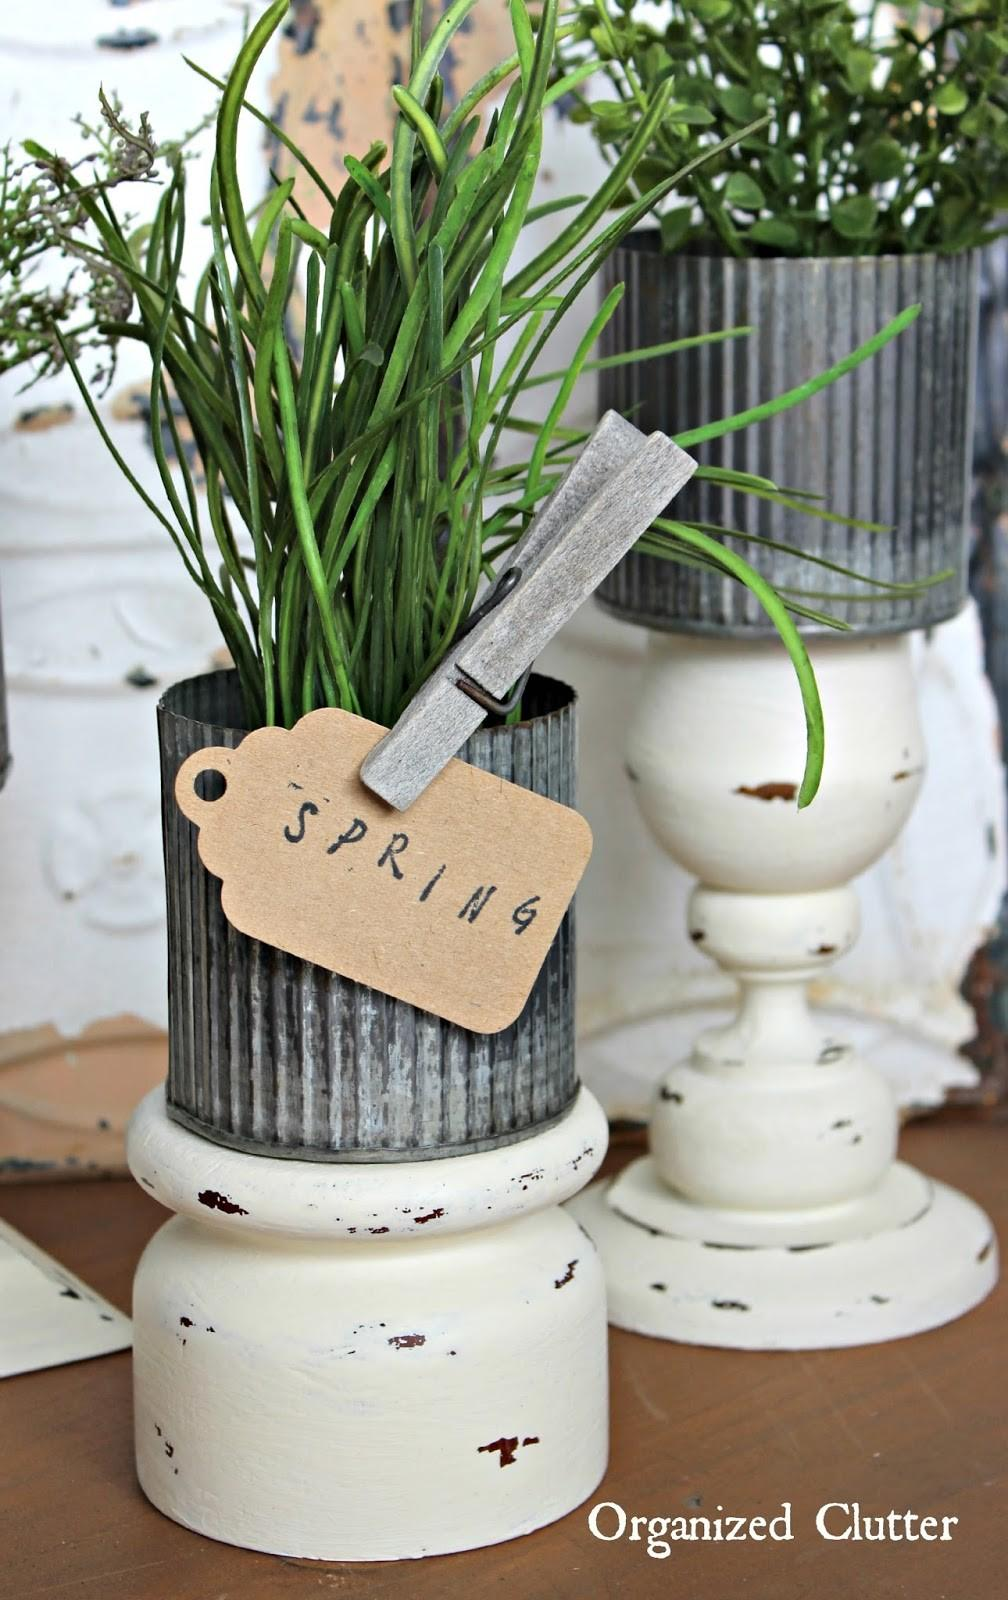 Upcycling Repurposing Organized Clutter